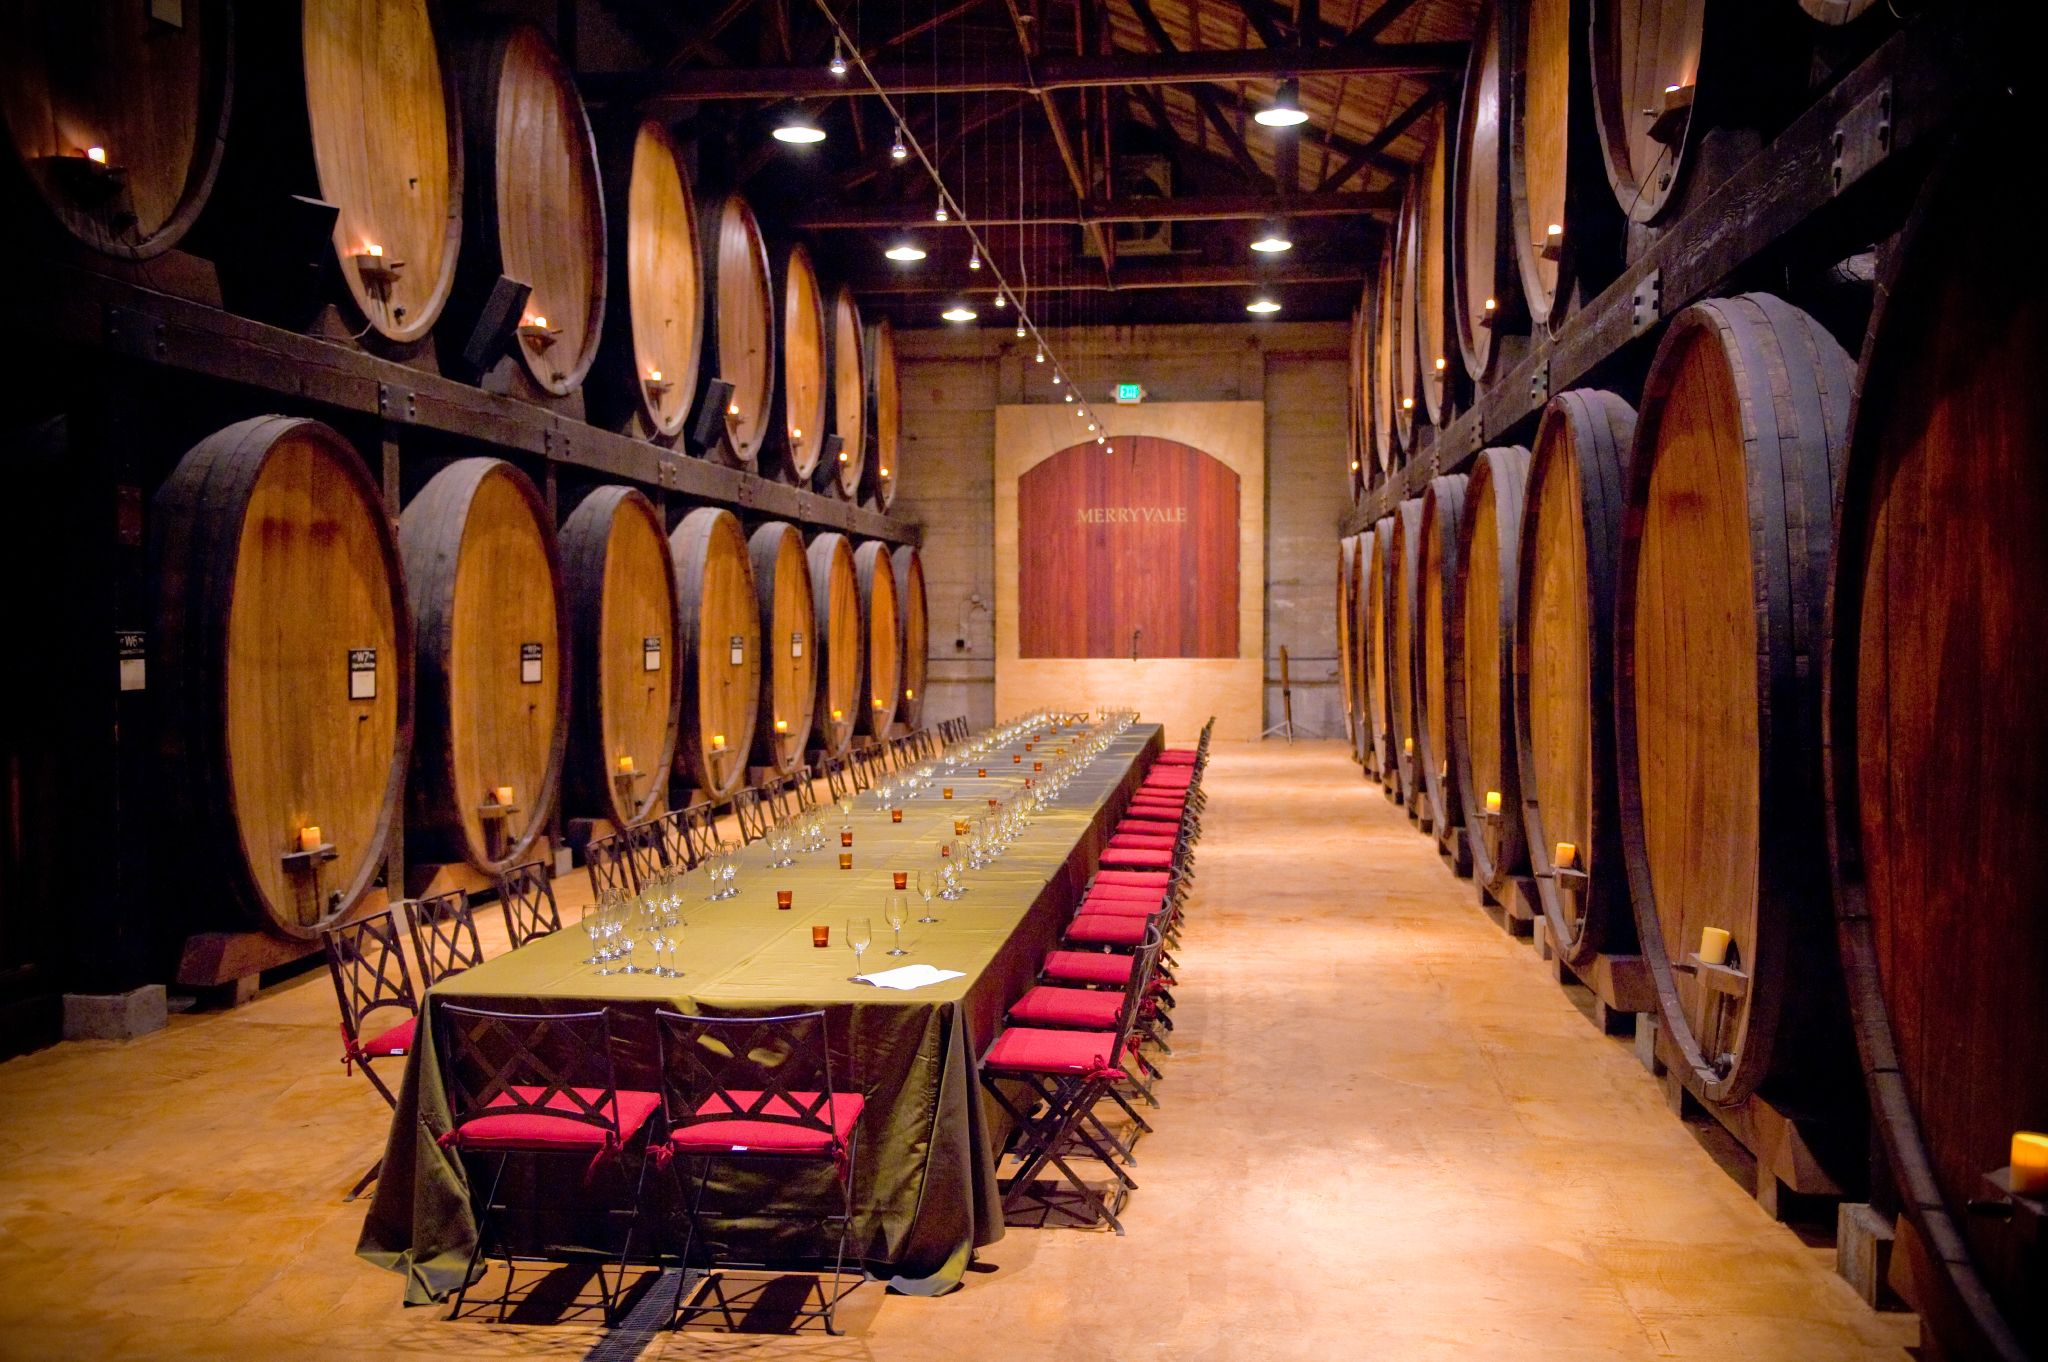 File:Barrel room at Merryvale.jpg - Wikimedia Commons